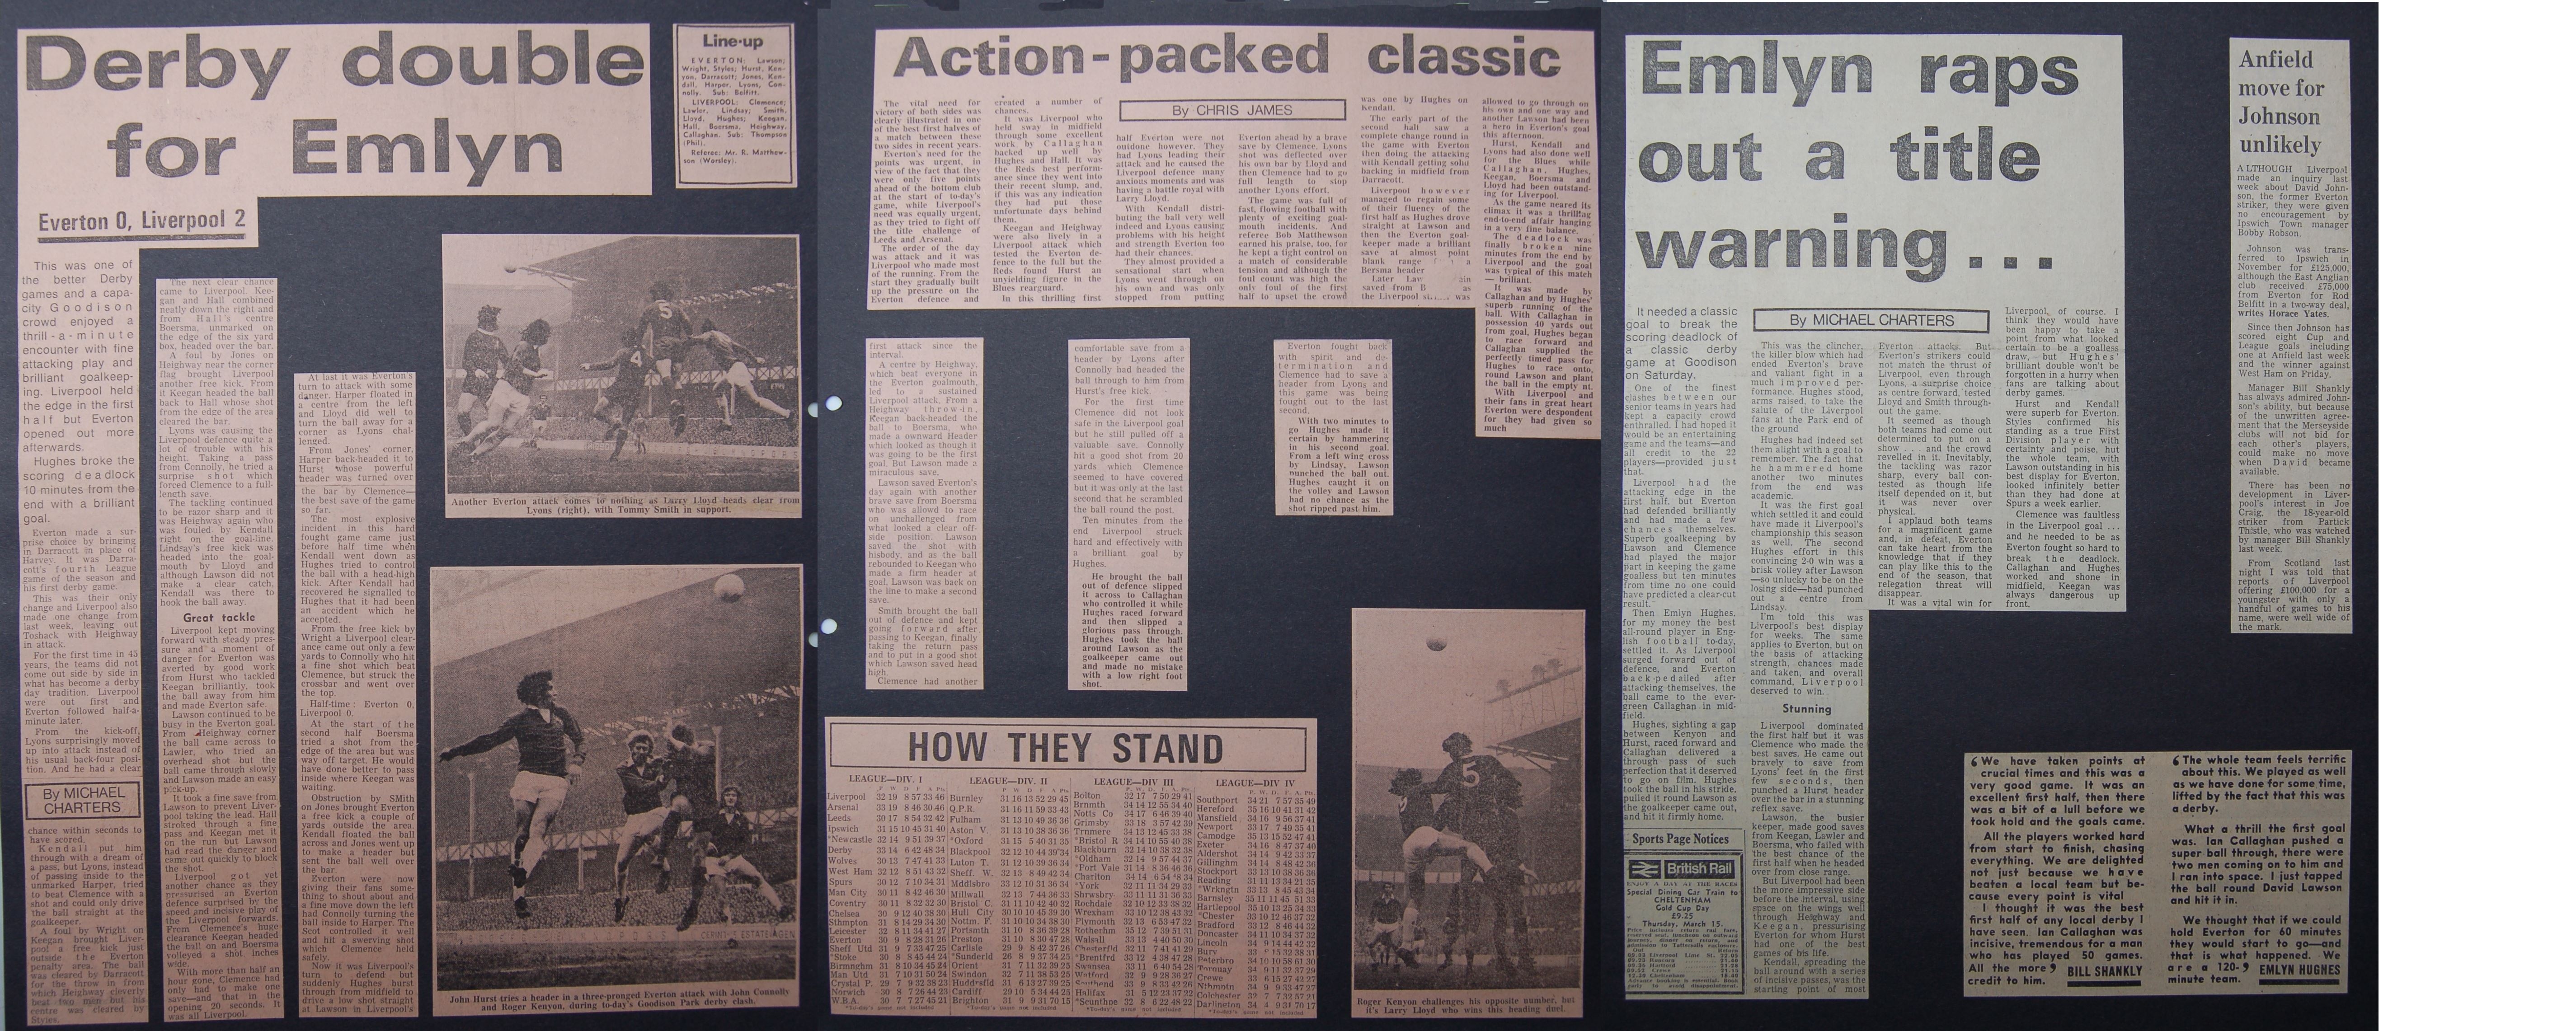 Emlyn's derby double on 3 March 1973